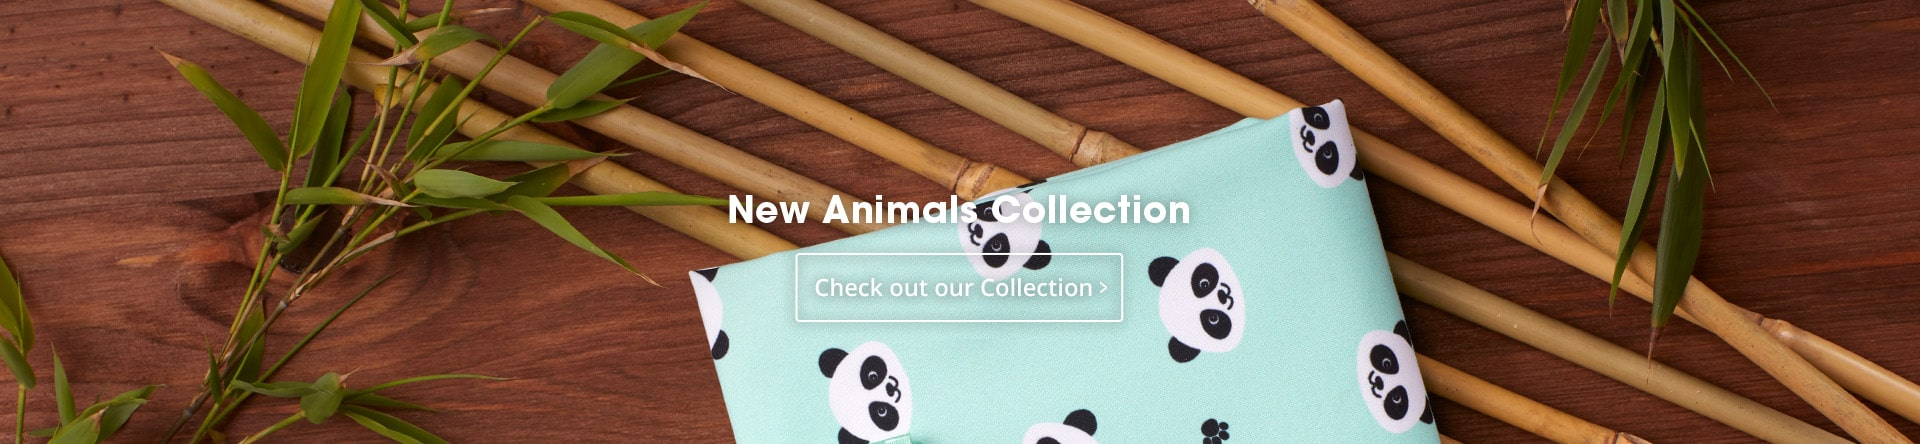 New Animals Collection